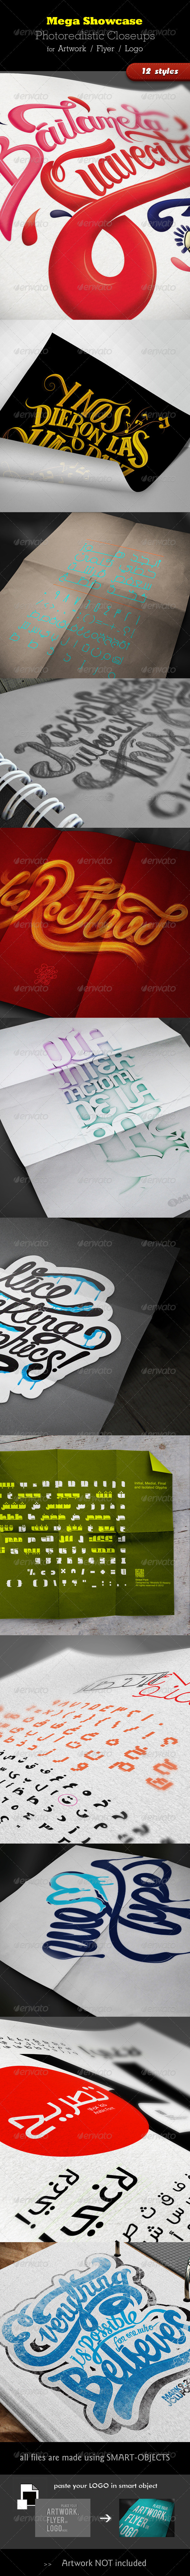 GraphicRiver Mega Showcase 3519536